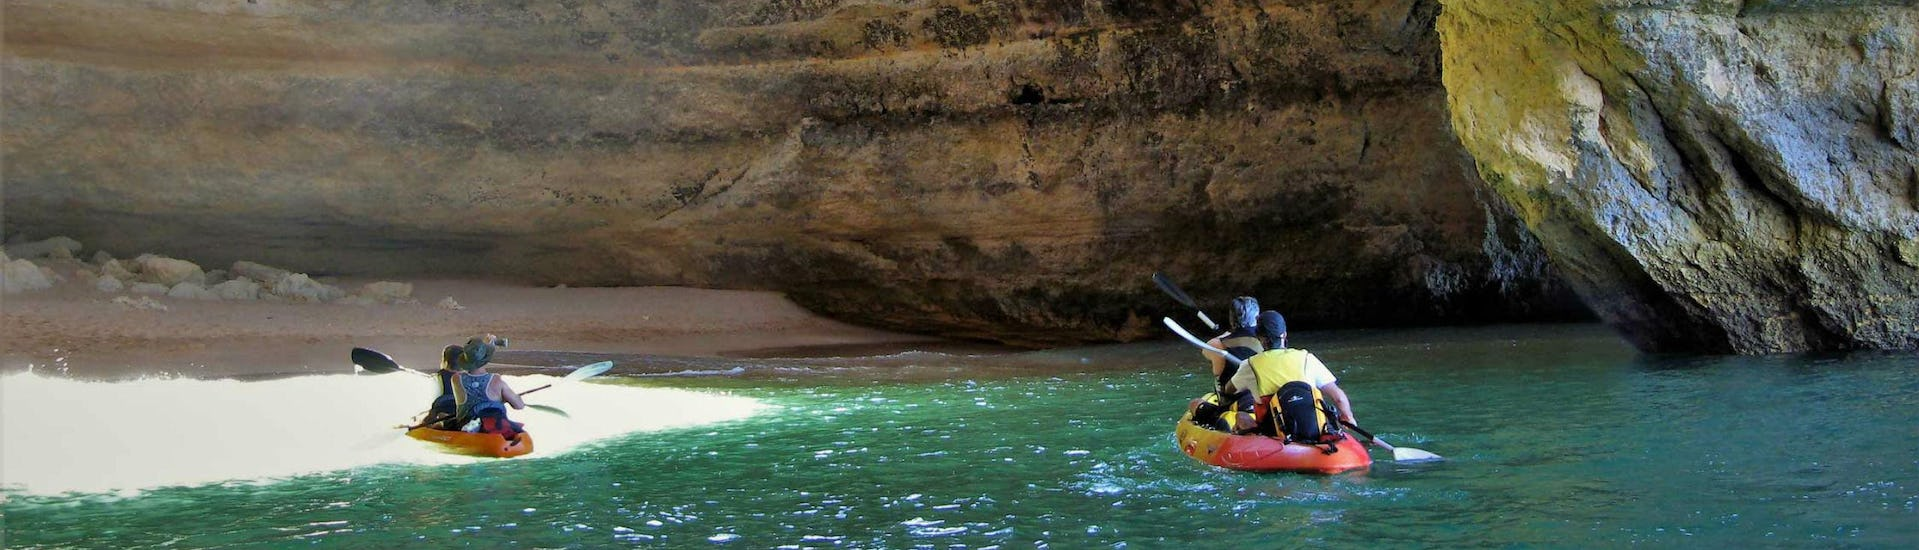 A group of kayakers is paddling into the Benagil Cave during their Boat and Kayak Tour - Benagil Cave with Seasiren Tours.